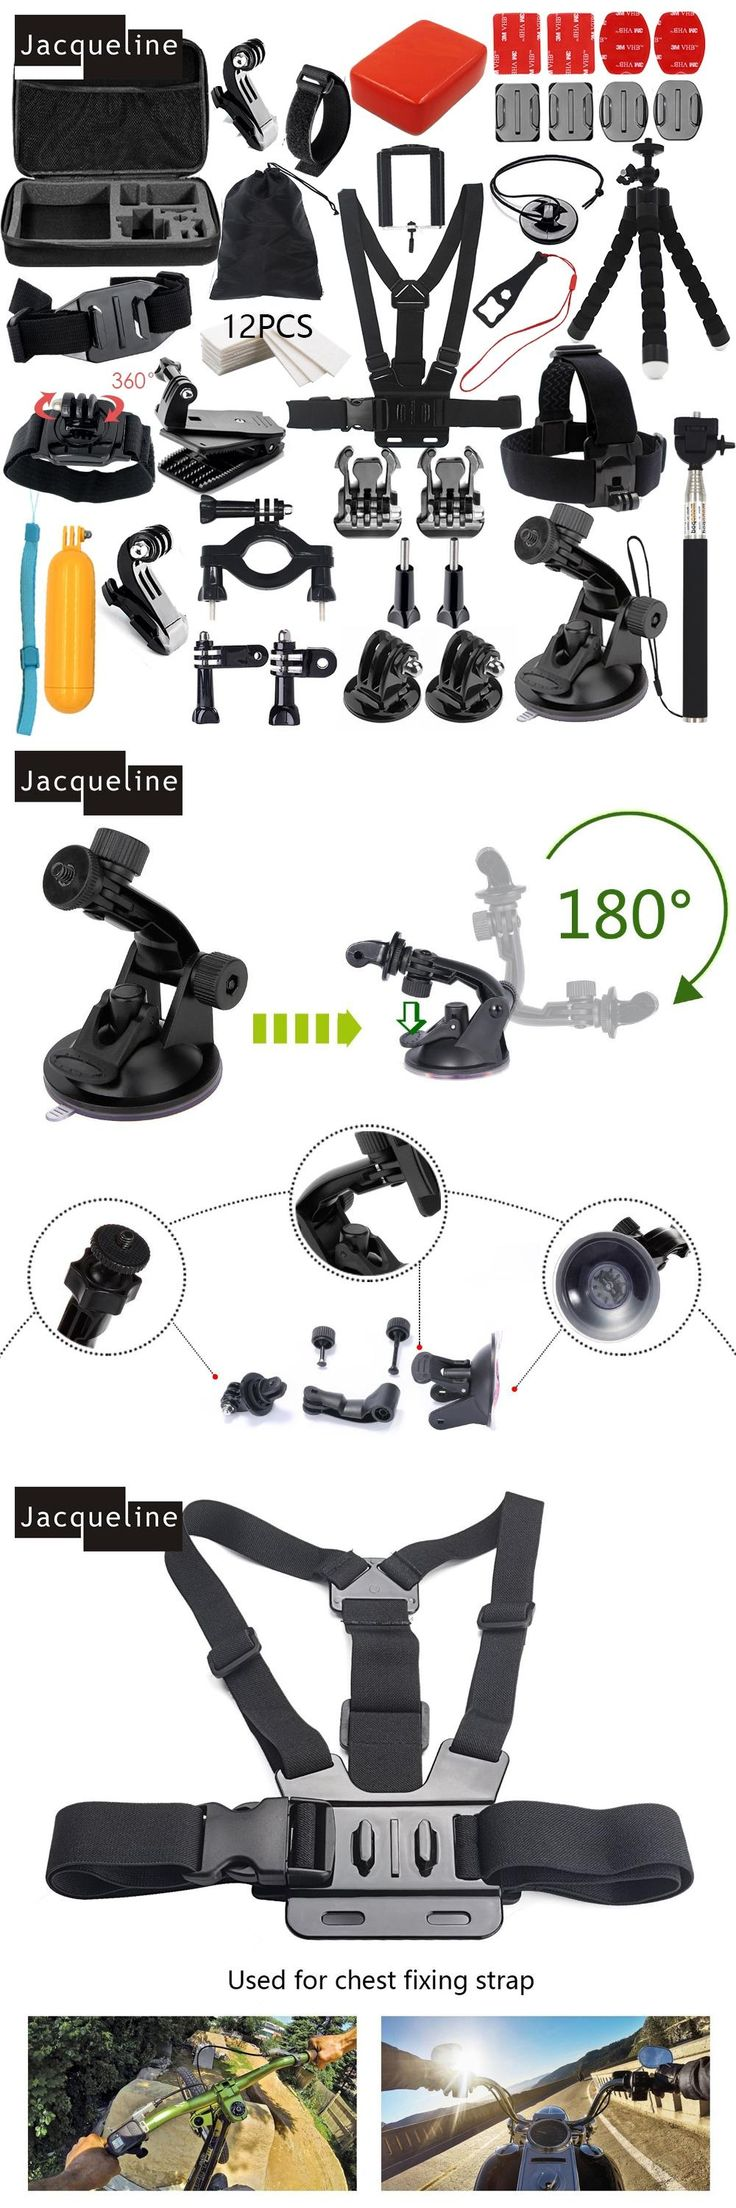 For Go pro Hero Accessories Kit Set Mount Holder for Gopro Hero 5 4 Hero3+ 3/SJCAM SJ5000 SJ6000/SOOCOO/EKEN H9R H9 H8 Tripod